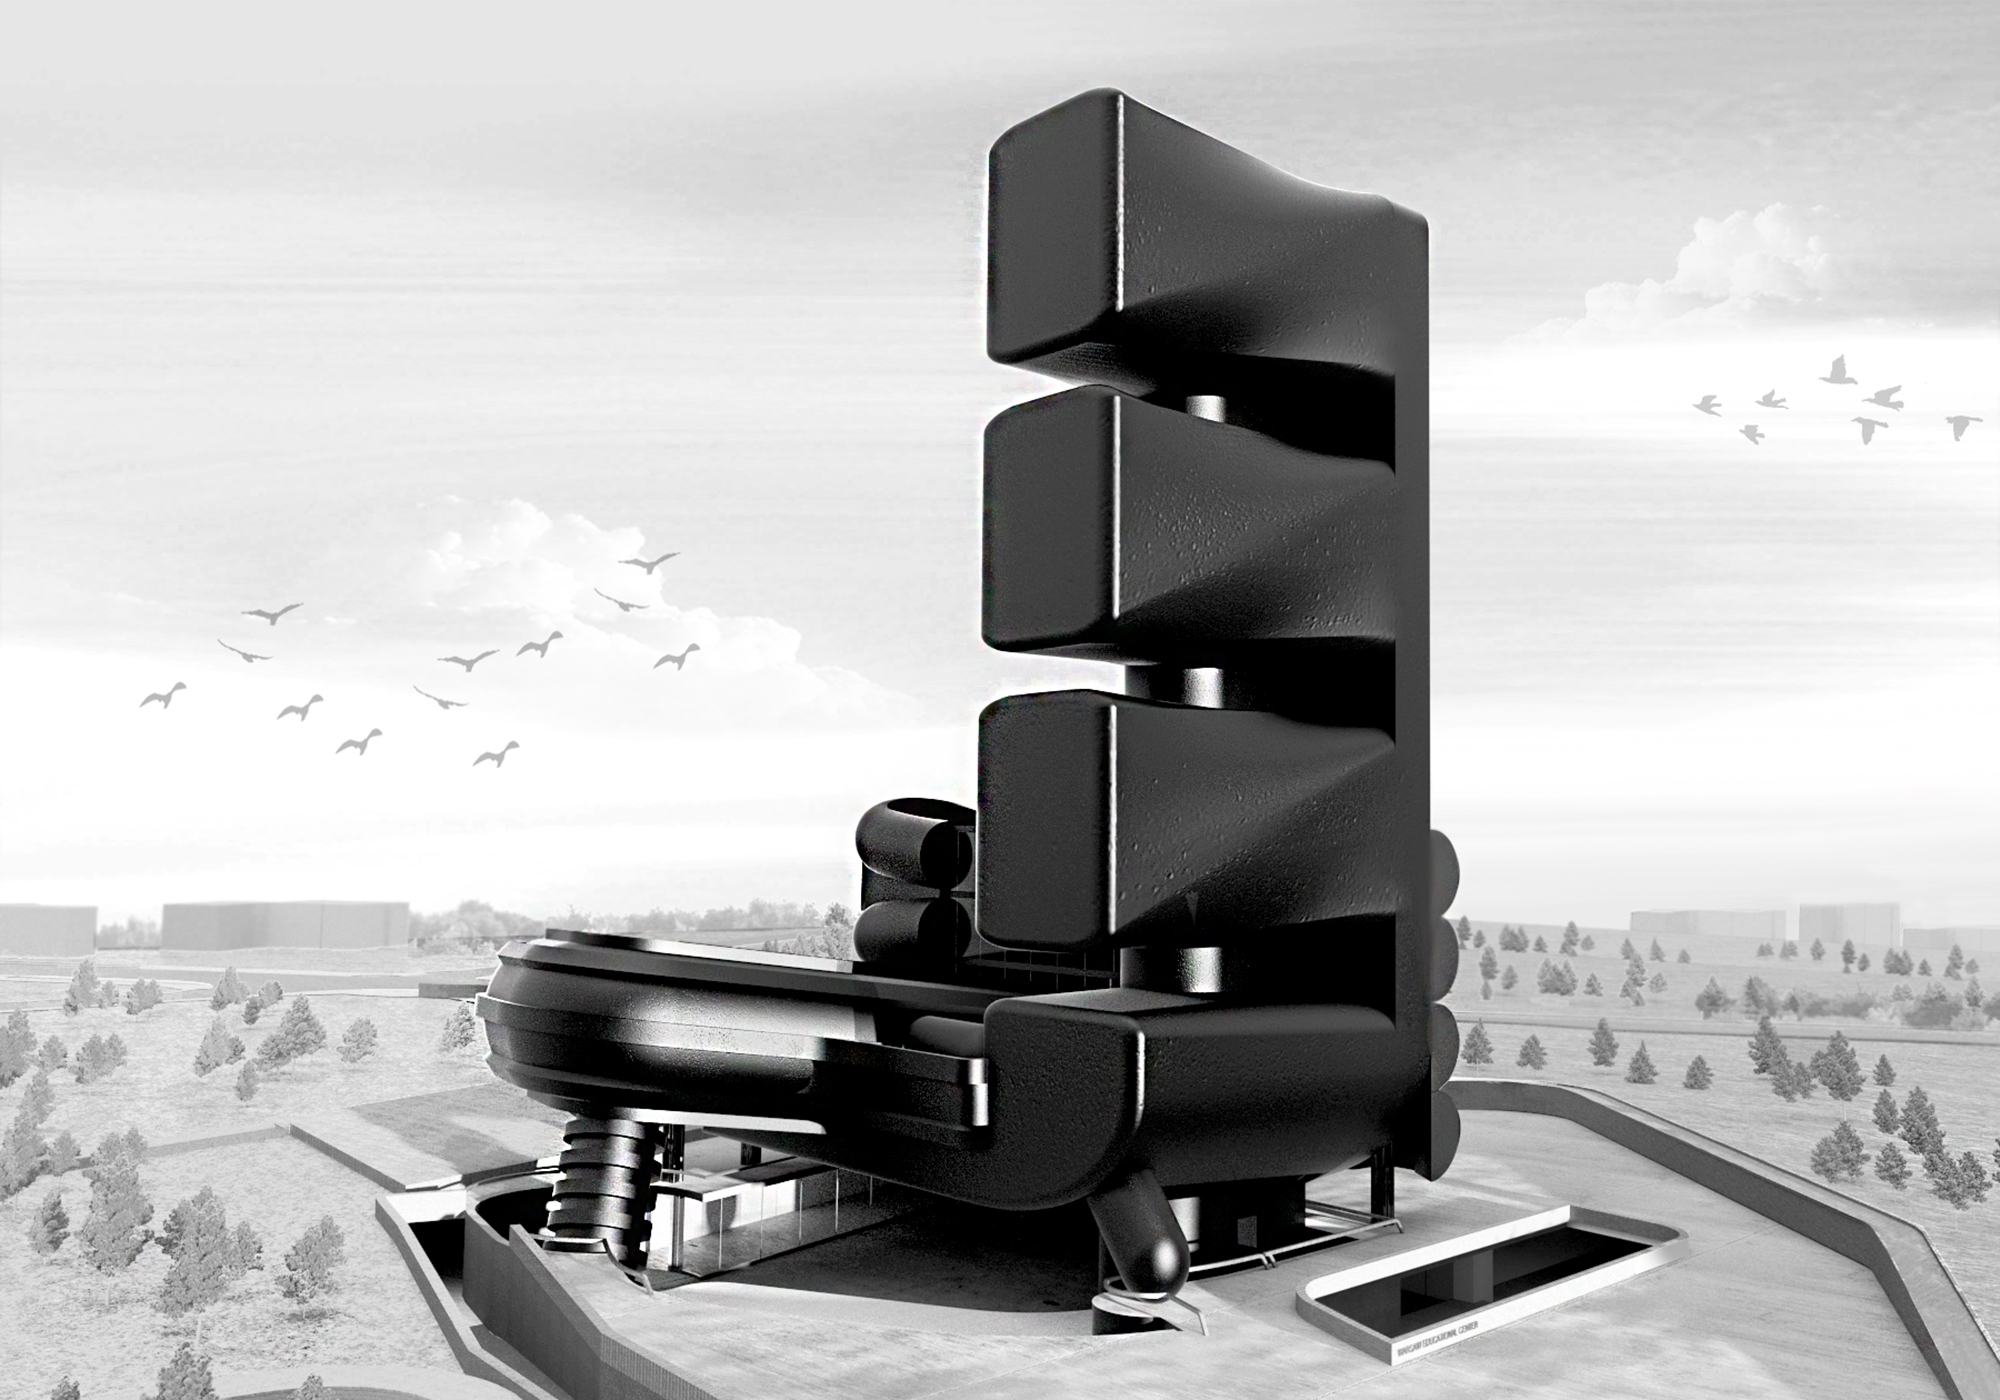 Tall black building render by student